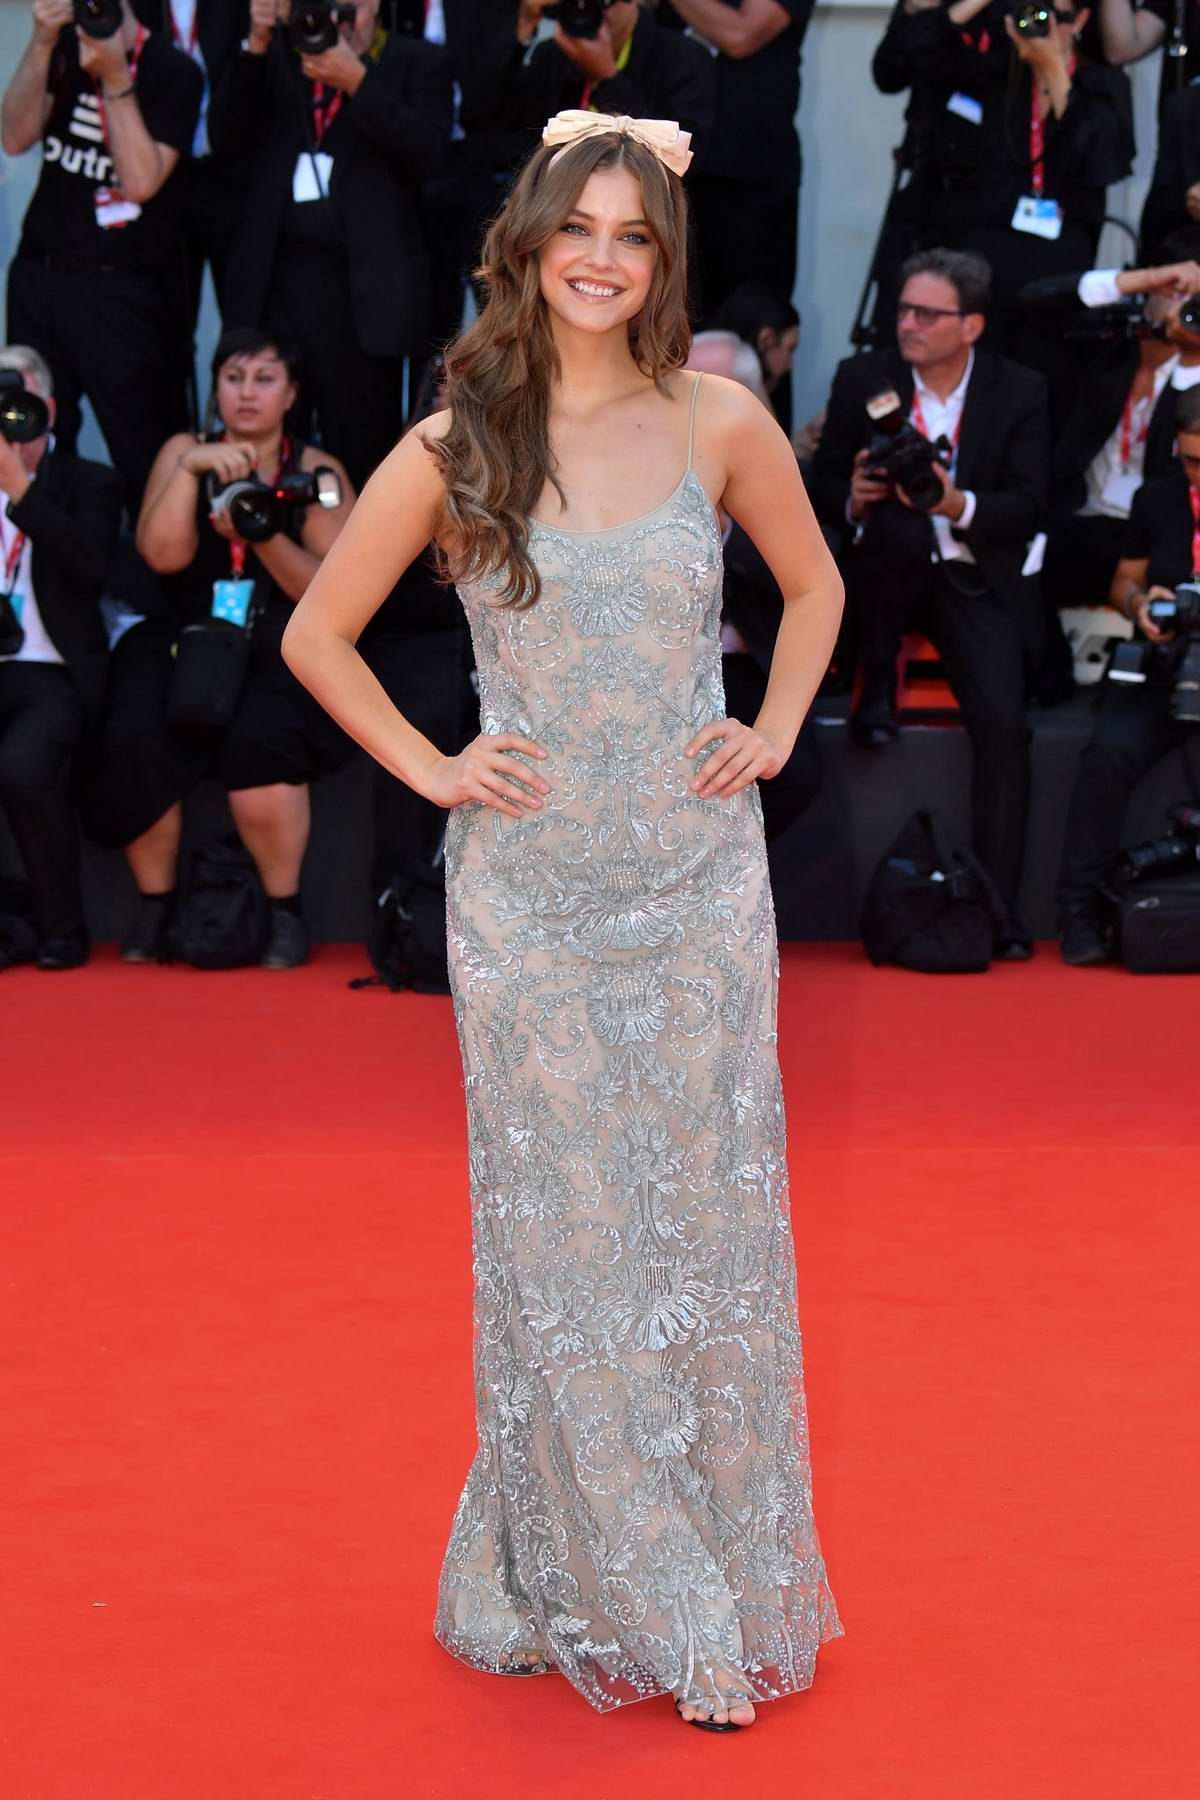 Barbara Palvin attends 'Joker' Screening during the 76th Venice Film Festival in Venice, Italy